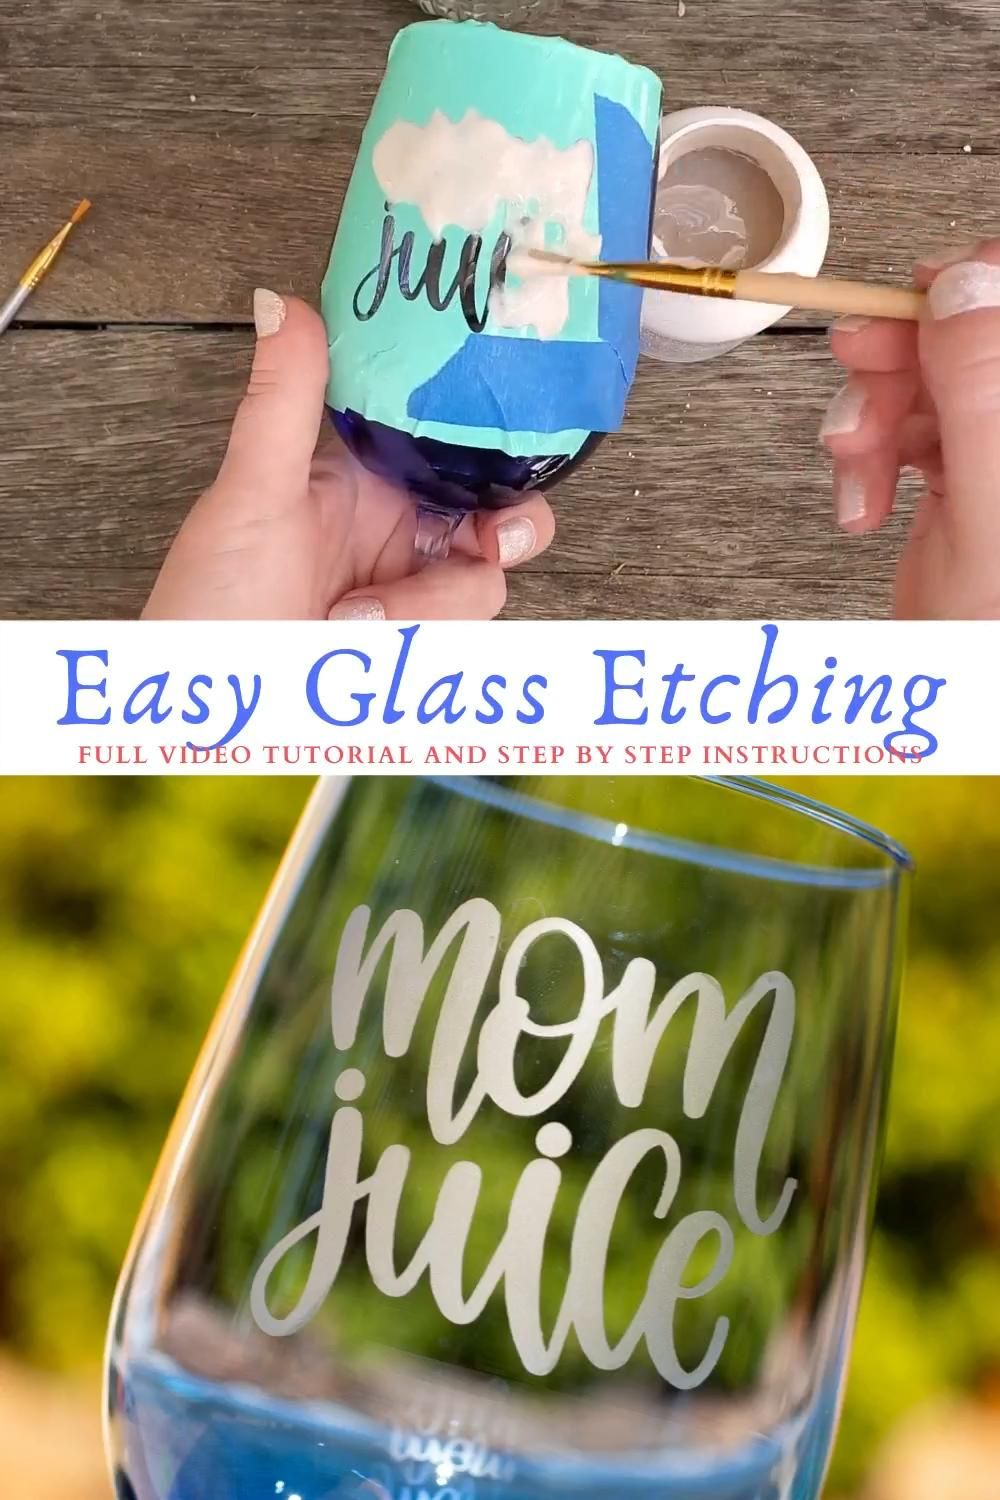 DIY Glass Etching with Cricut